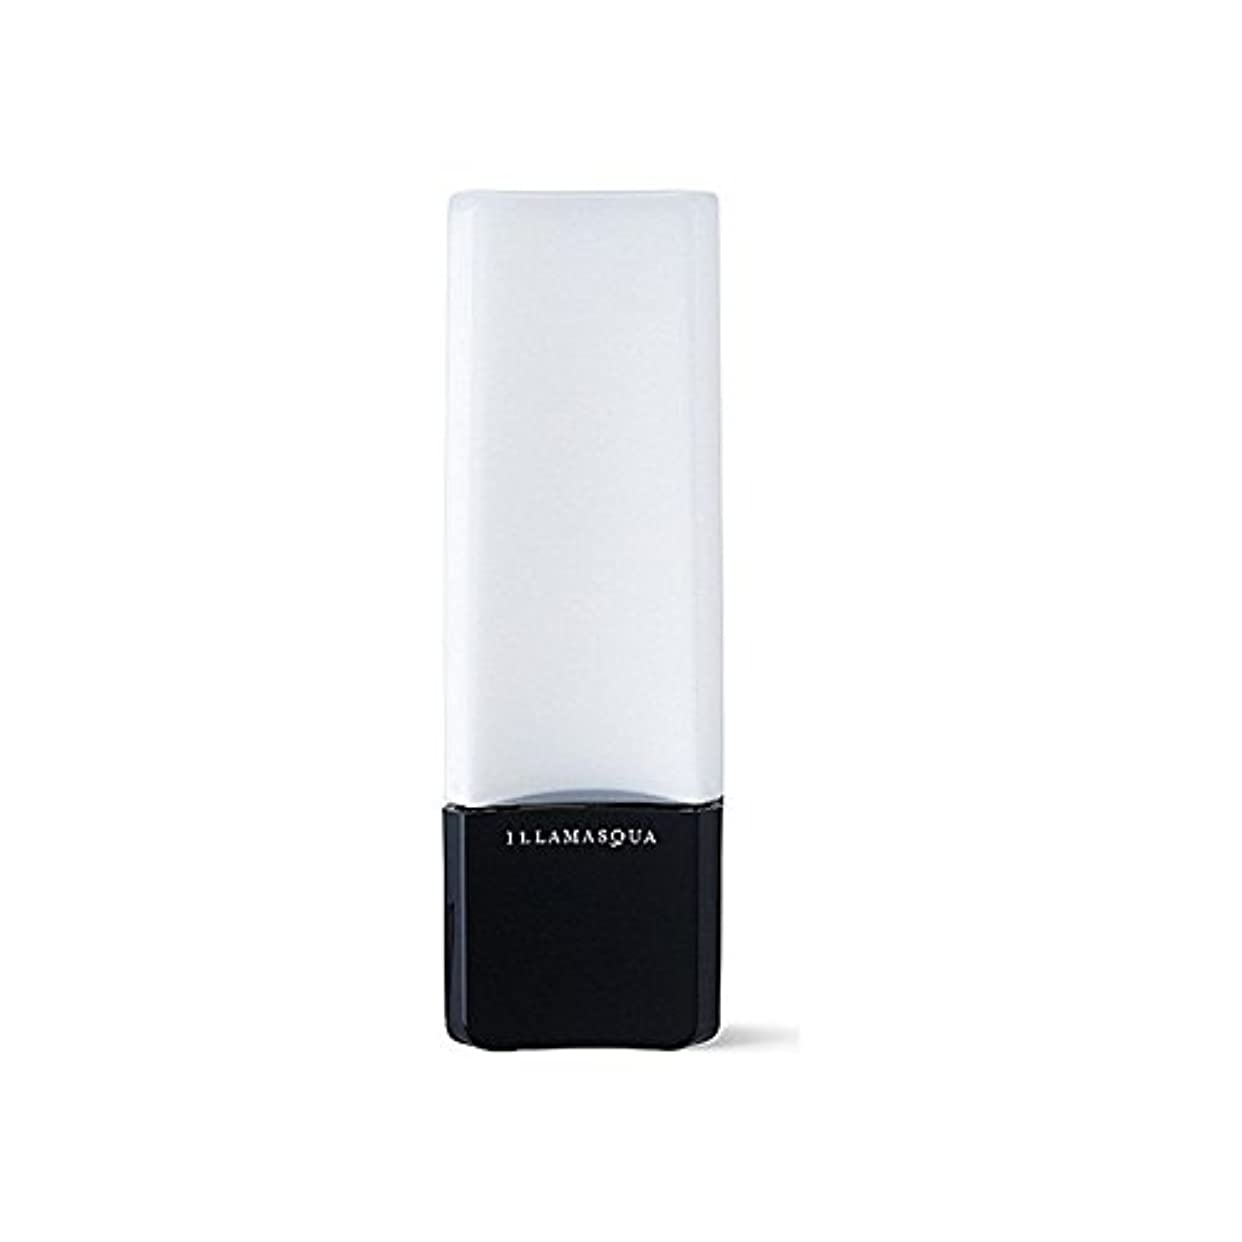 サテンプライマー 20 x4 - Illamasqua Satin Primer Spf 20 (Pack of 4) [並行輸入品]